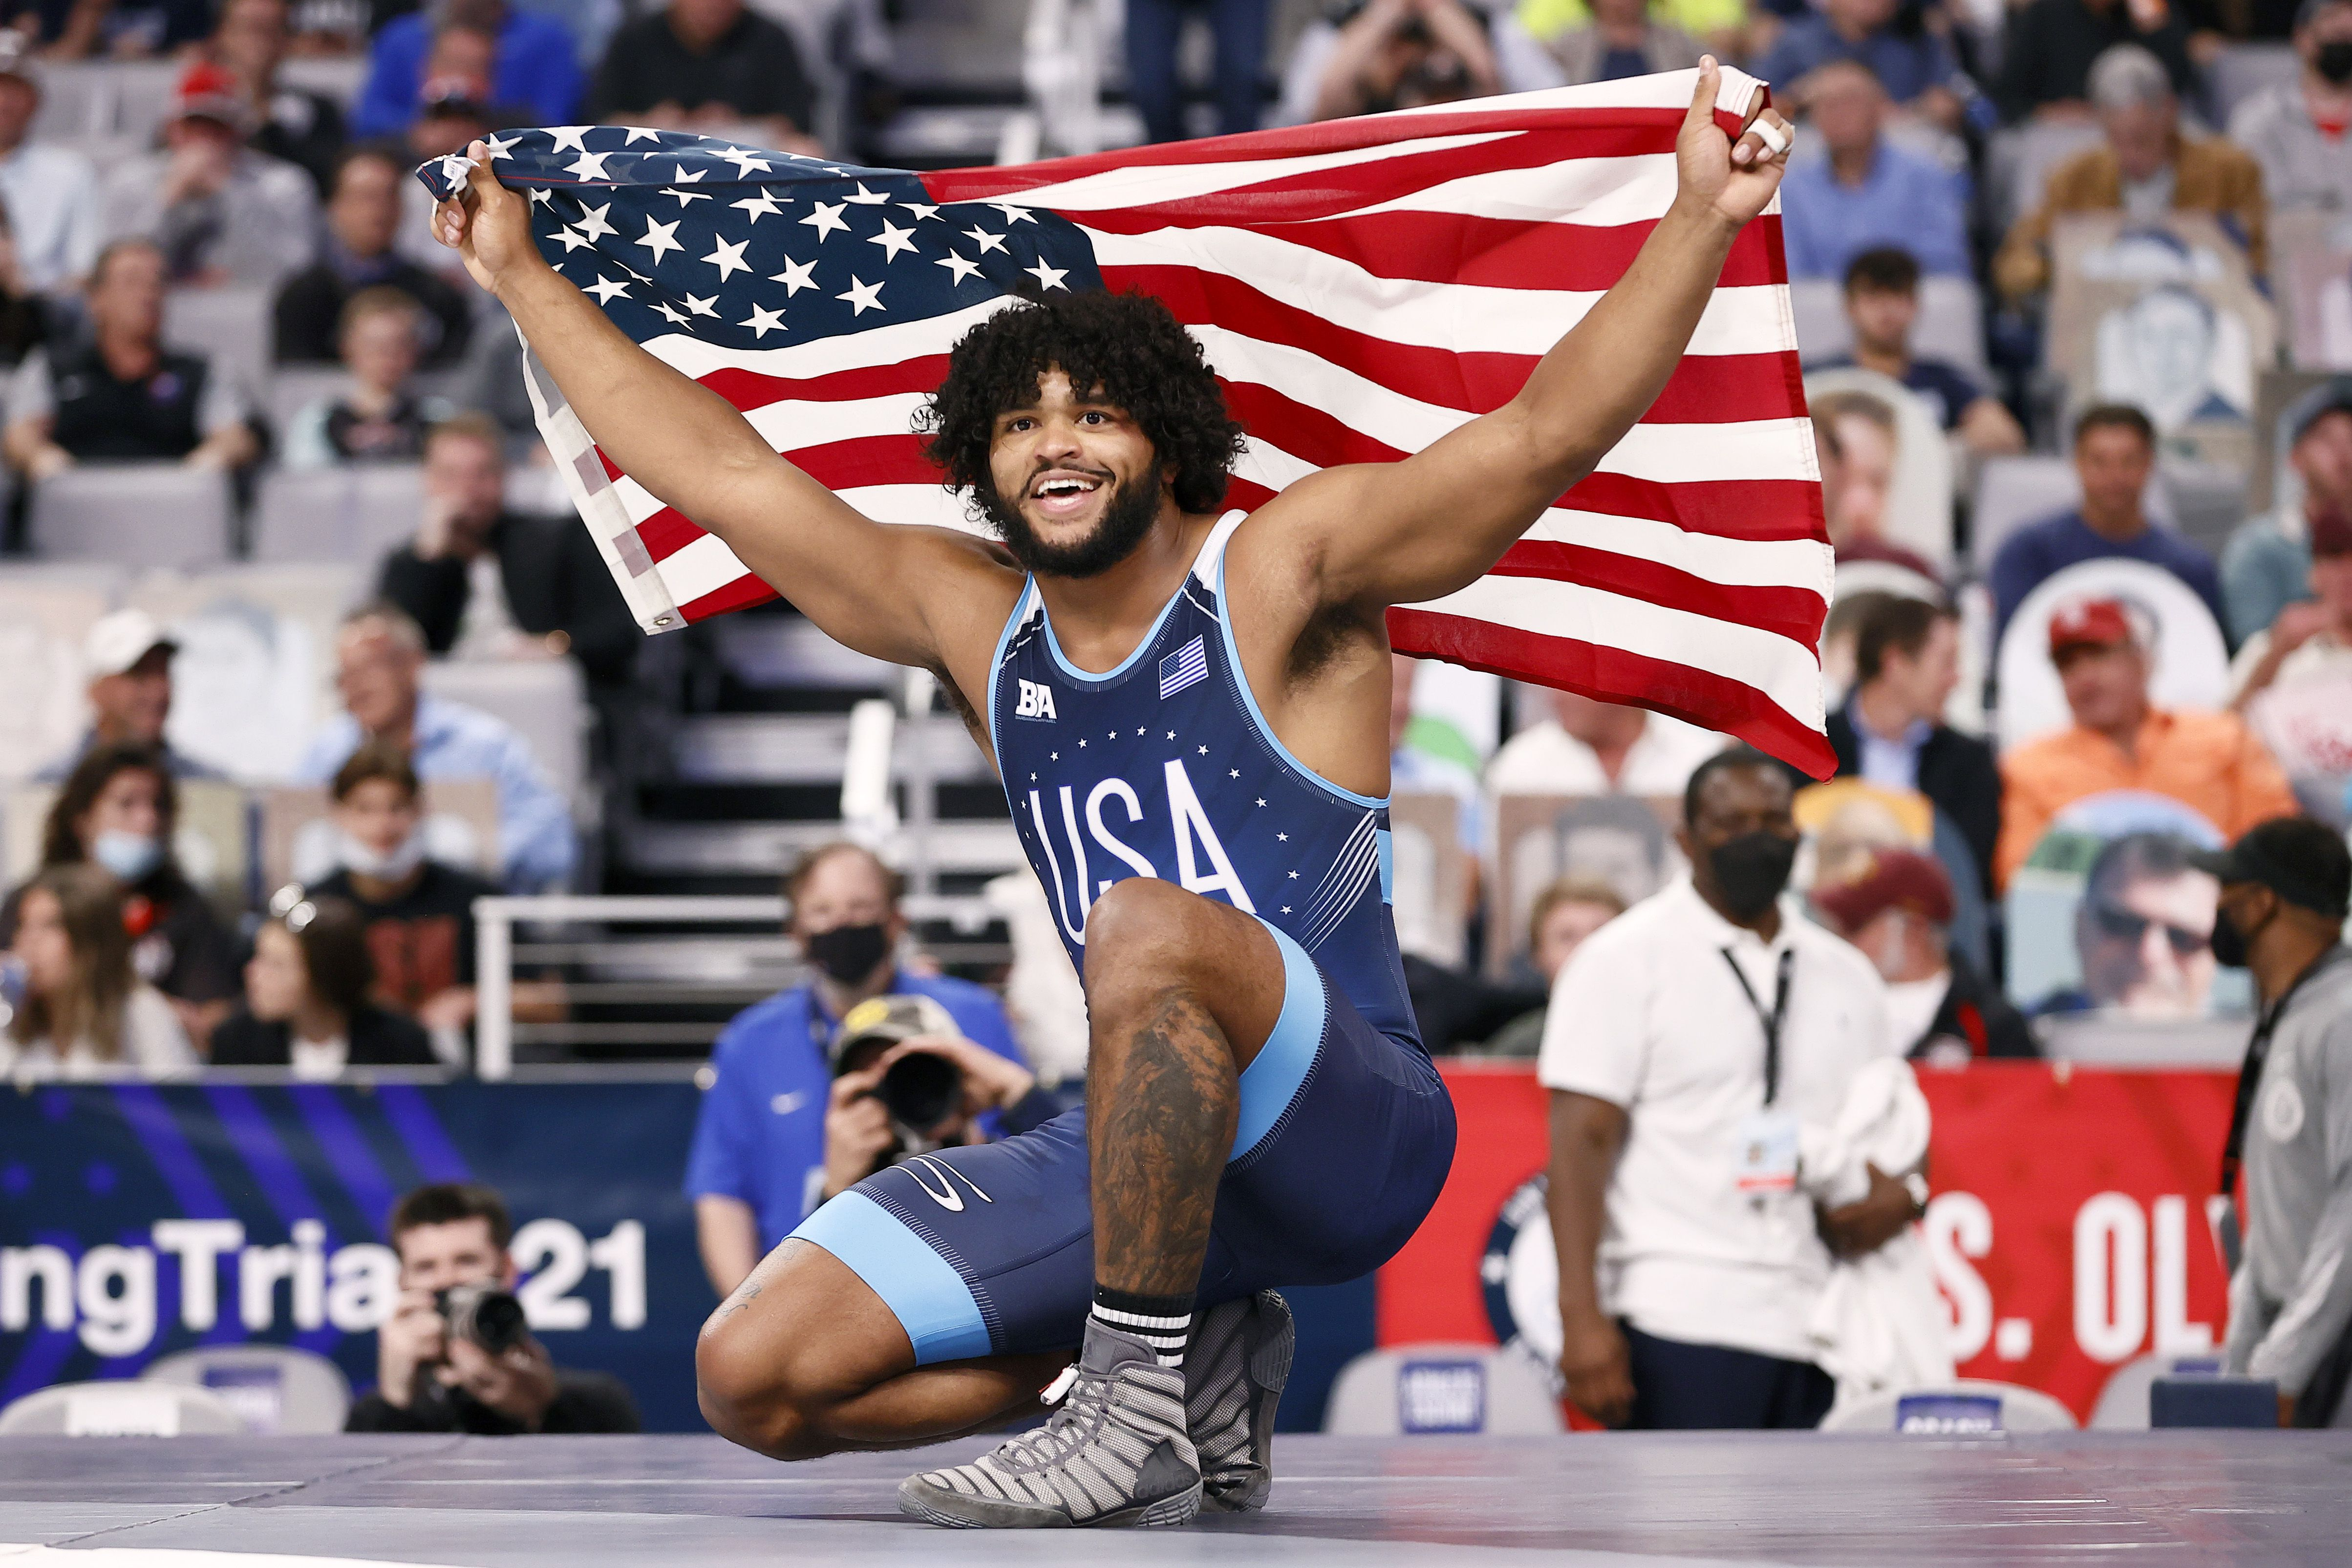 Tracy G'Angelo Hancock celebrates a victory at the U.S. trials in April. Photo: Tom Pennington/Getty Images